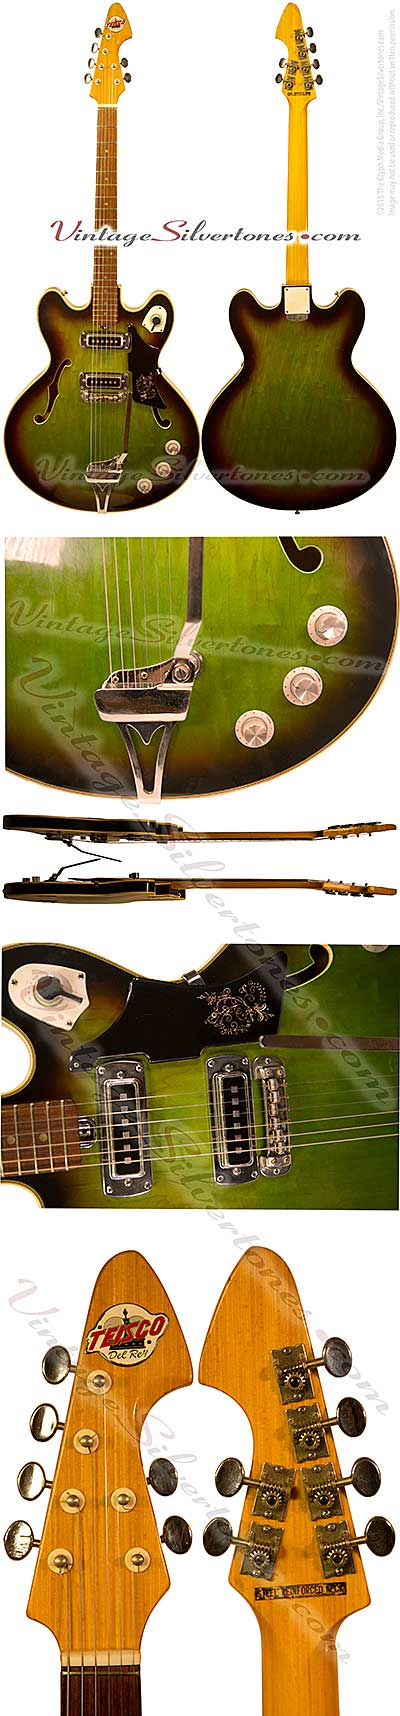 Teisco Del Rey EP-10T hollow body electric guitar 2 pickup, greenburst, double cutaway, made in Japan 1963